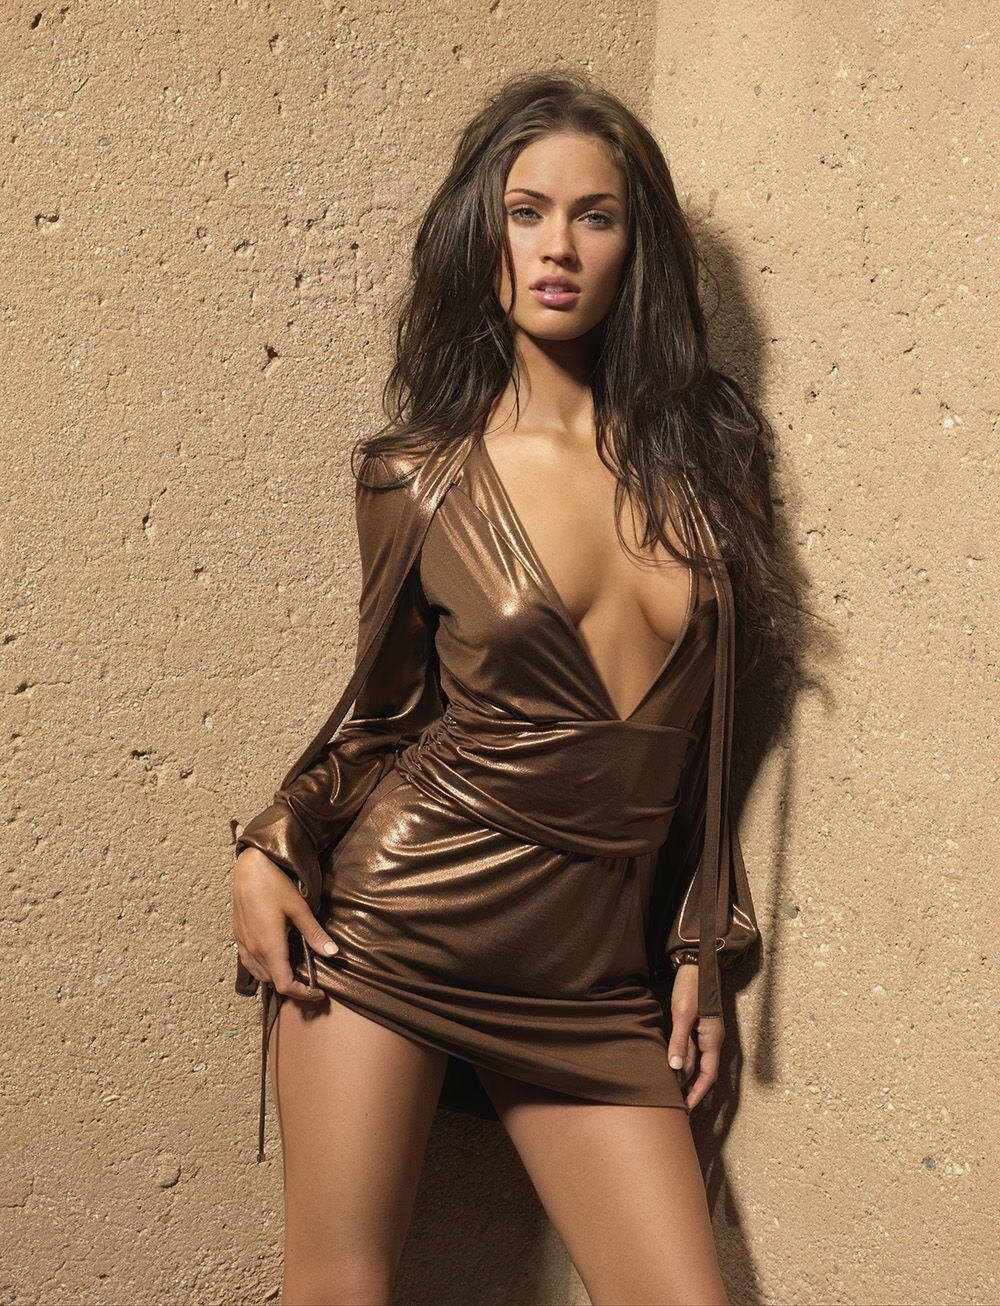 Image Is Loading 00960 Megan Fox Super Model Hollywood Actress Image